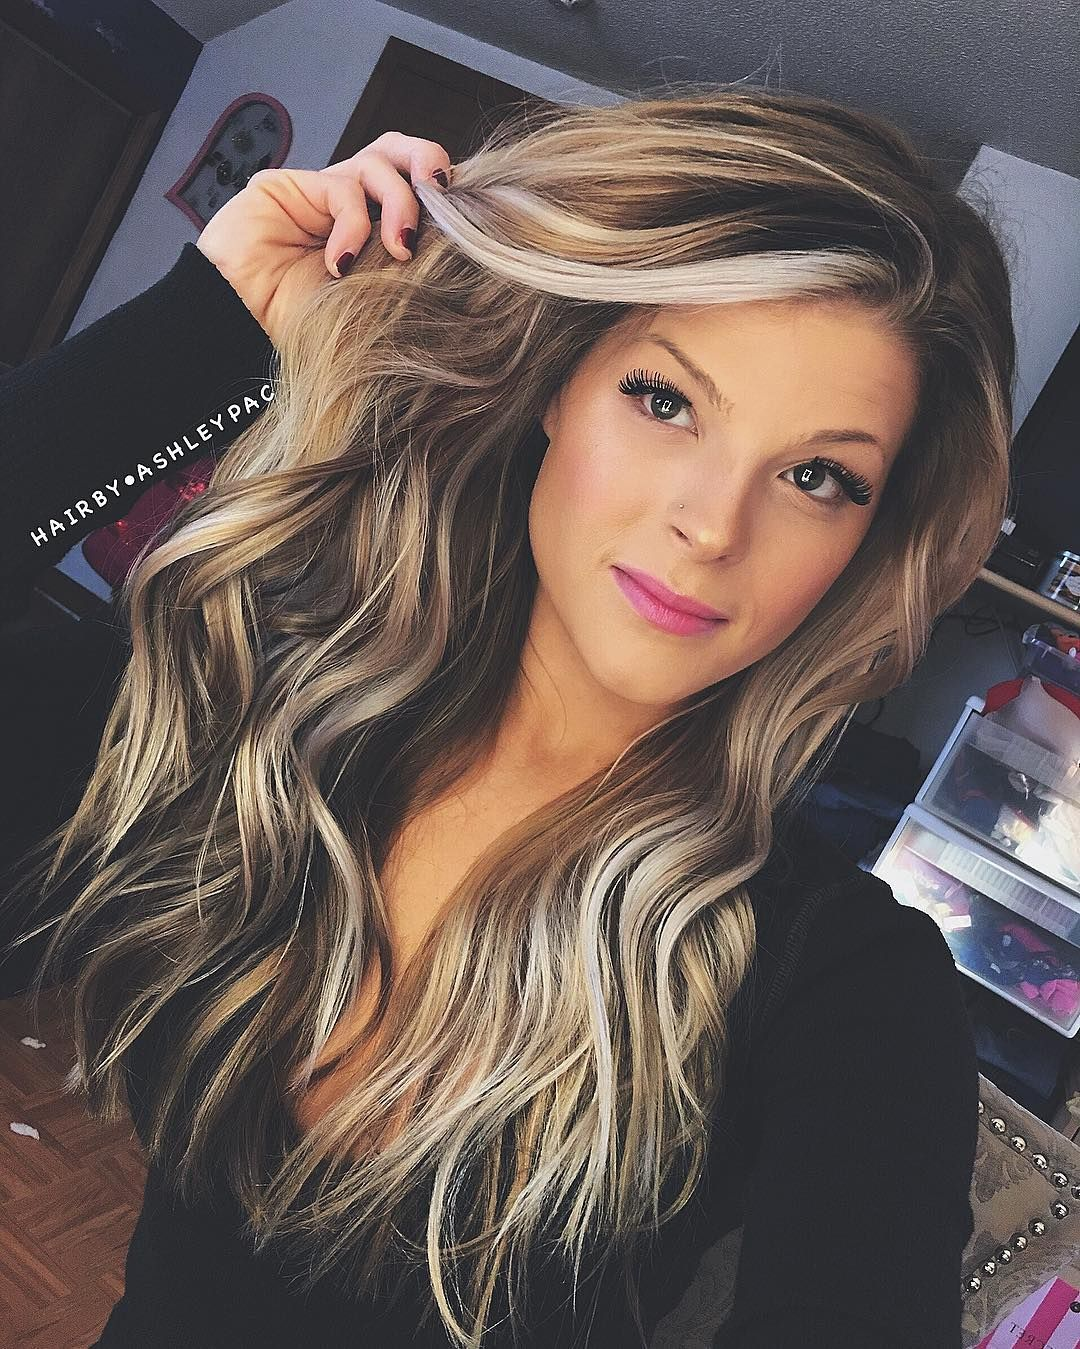 30 Balayage Hair Color Ideas With Blonde Brown And Caramel Highlights Koees Blog